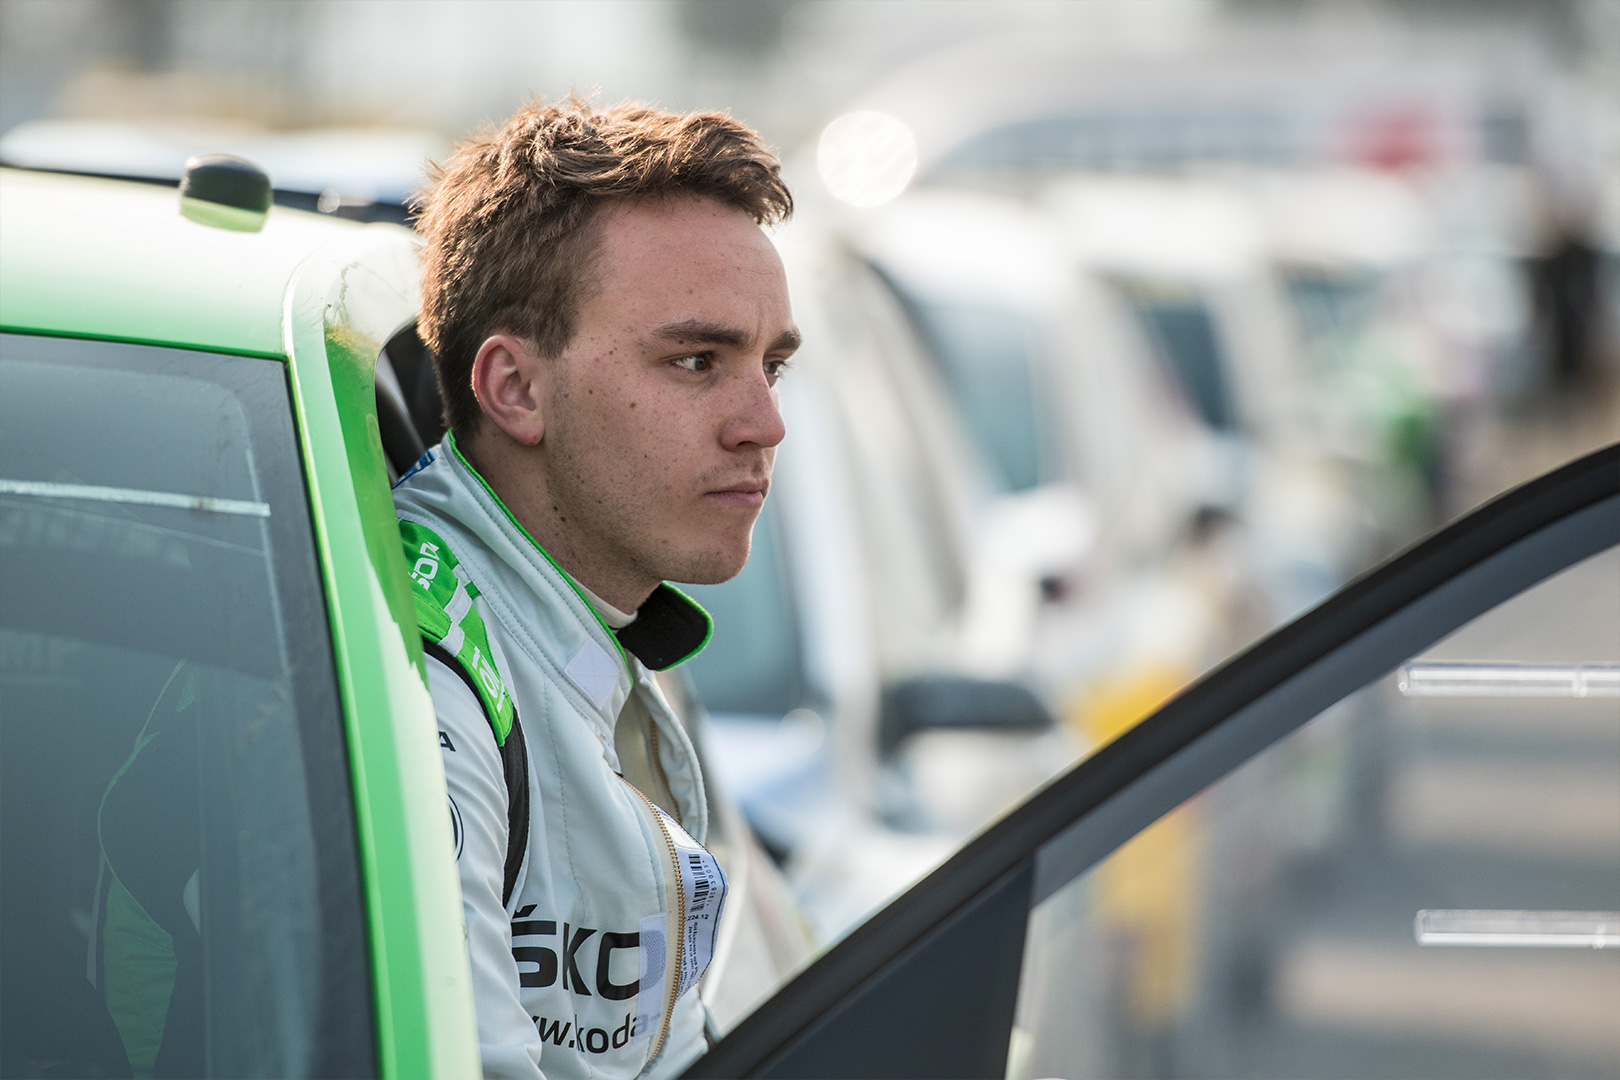 O.C. Veiby and Stig Rune Skjærmoen Are Leaving ŠKODA Motorsport